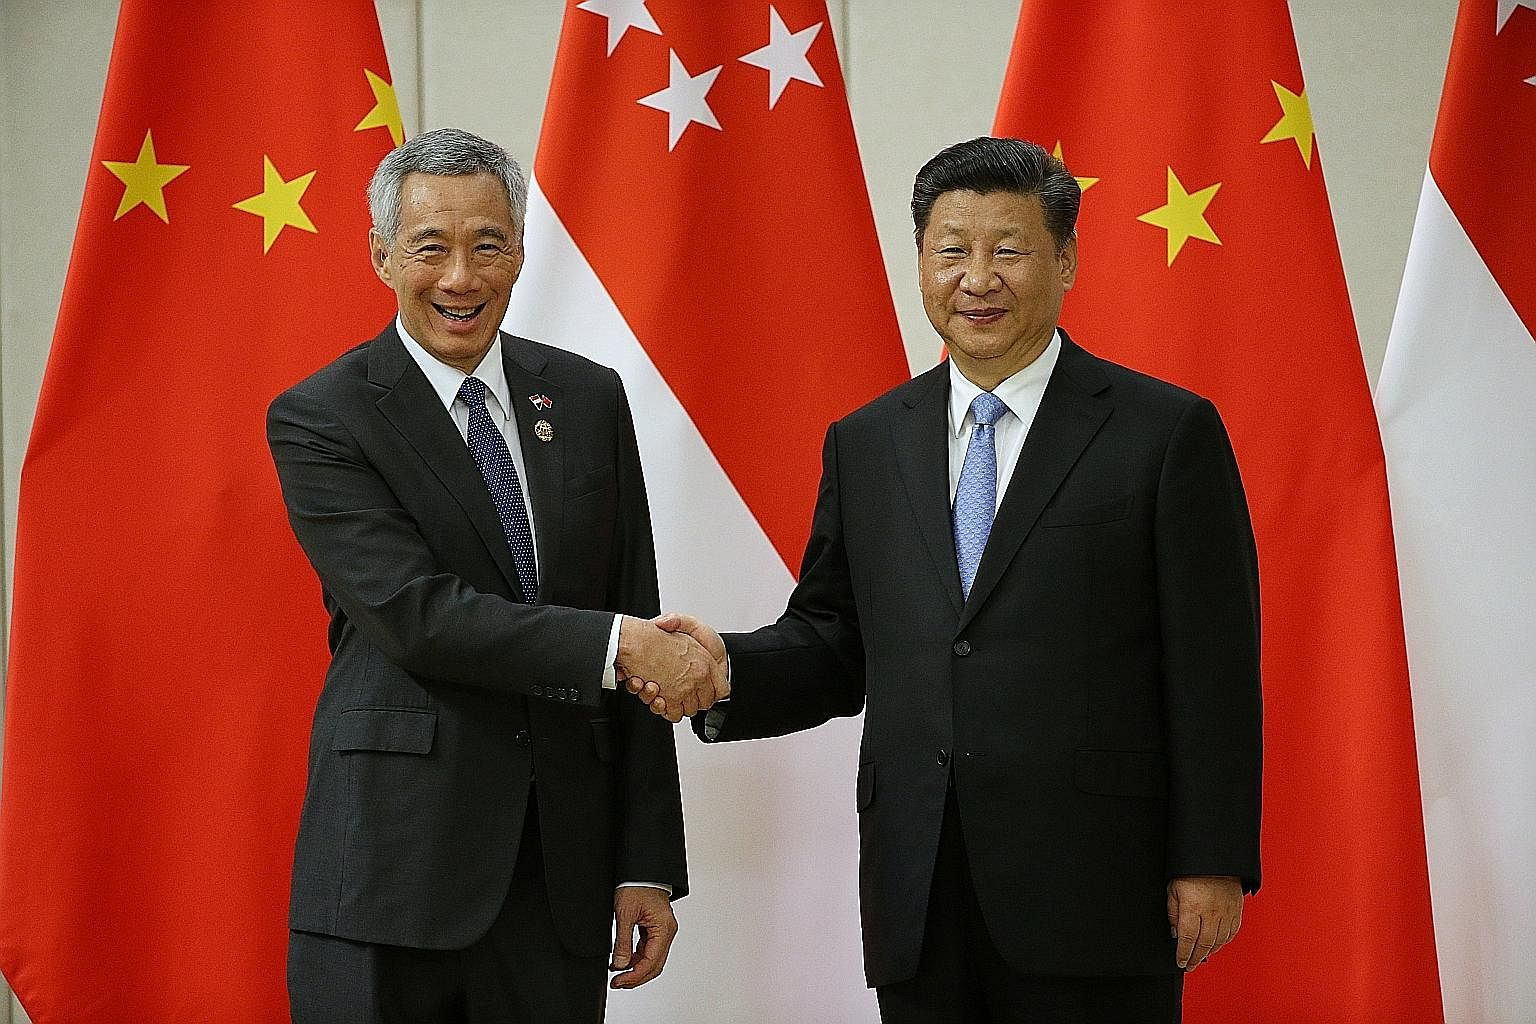 Prime Minister Lee Hsien Loong with Chinese President Xi Jinping at the Boao Forum on Tuesday. Mr Lee says in his speech that China's role in the international economy will grow larger. This has shifted the overall strategic balance. It has also rais